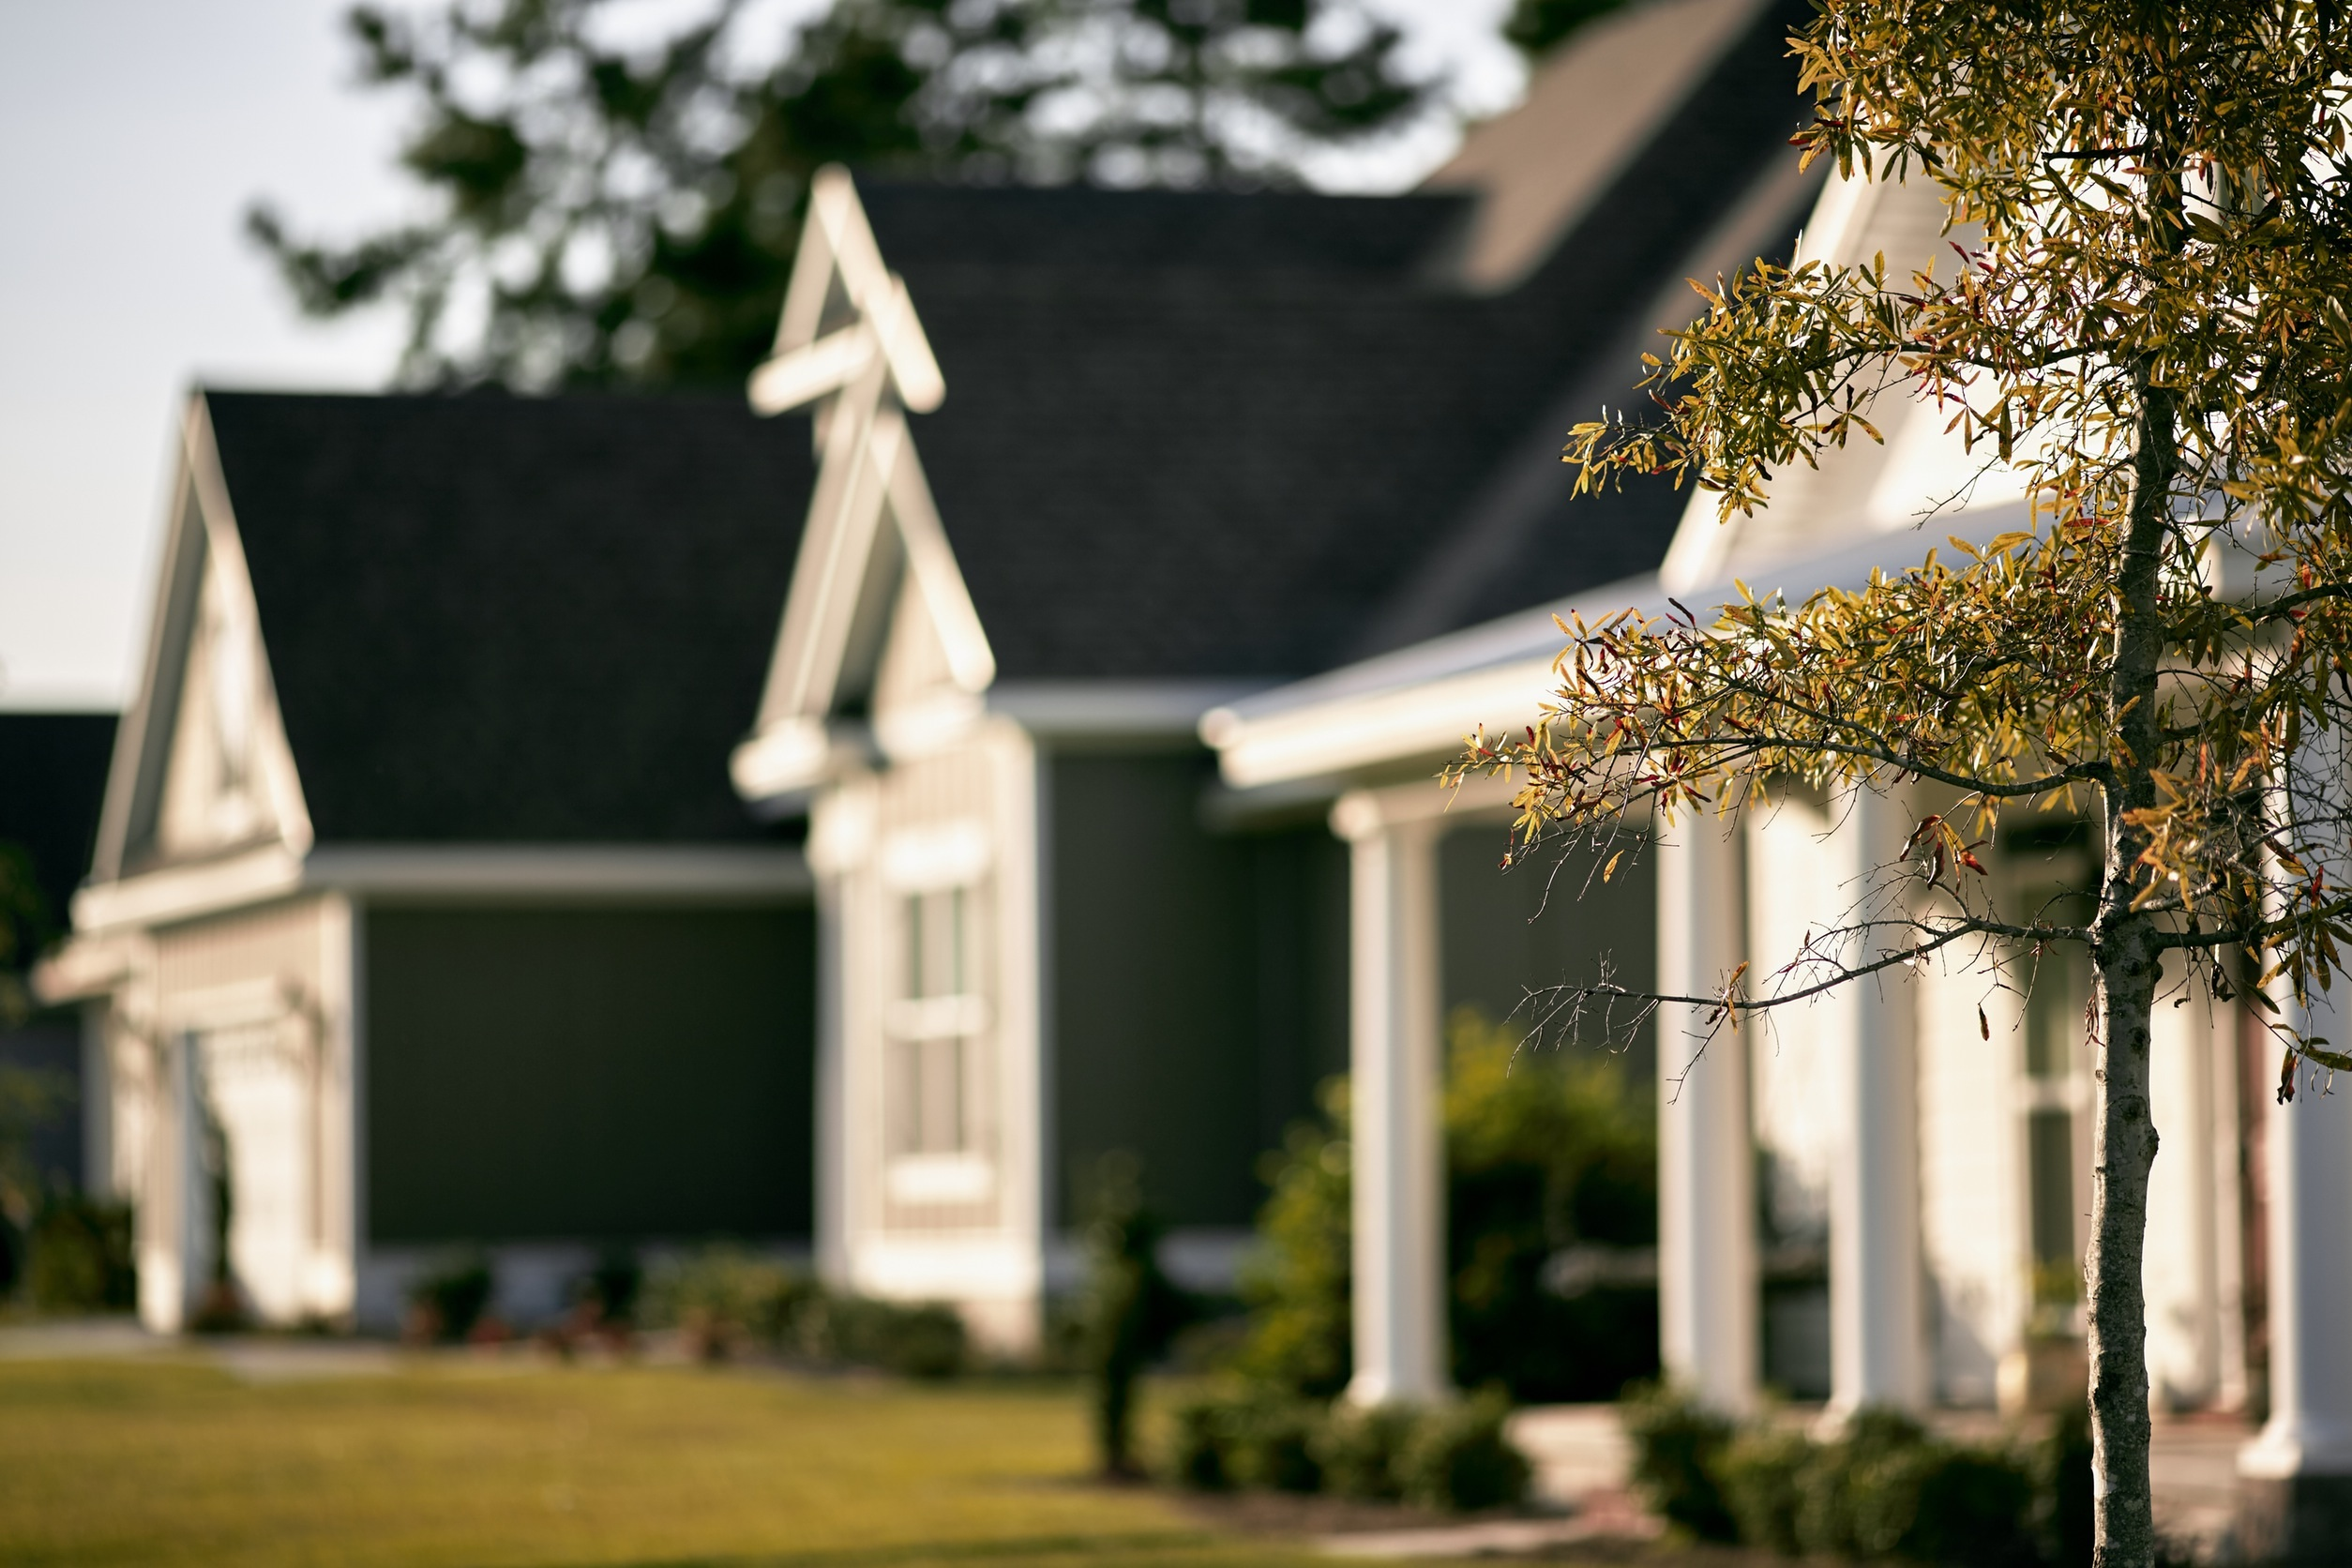 How To Buy Your First Home Without A Credit Score